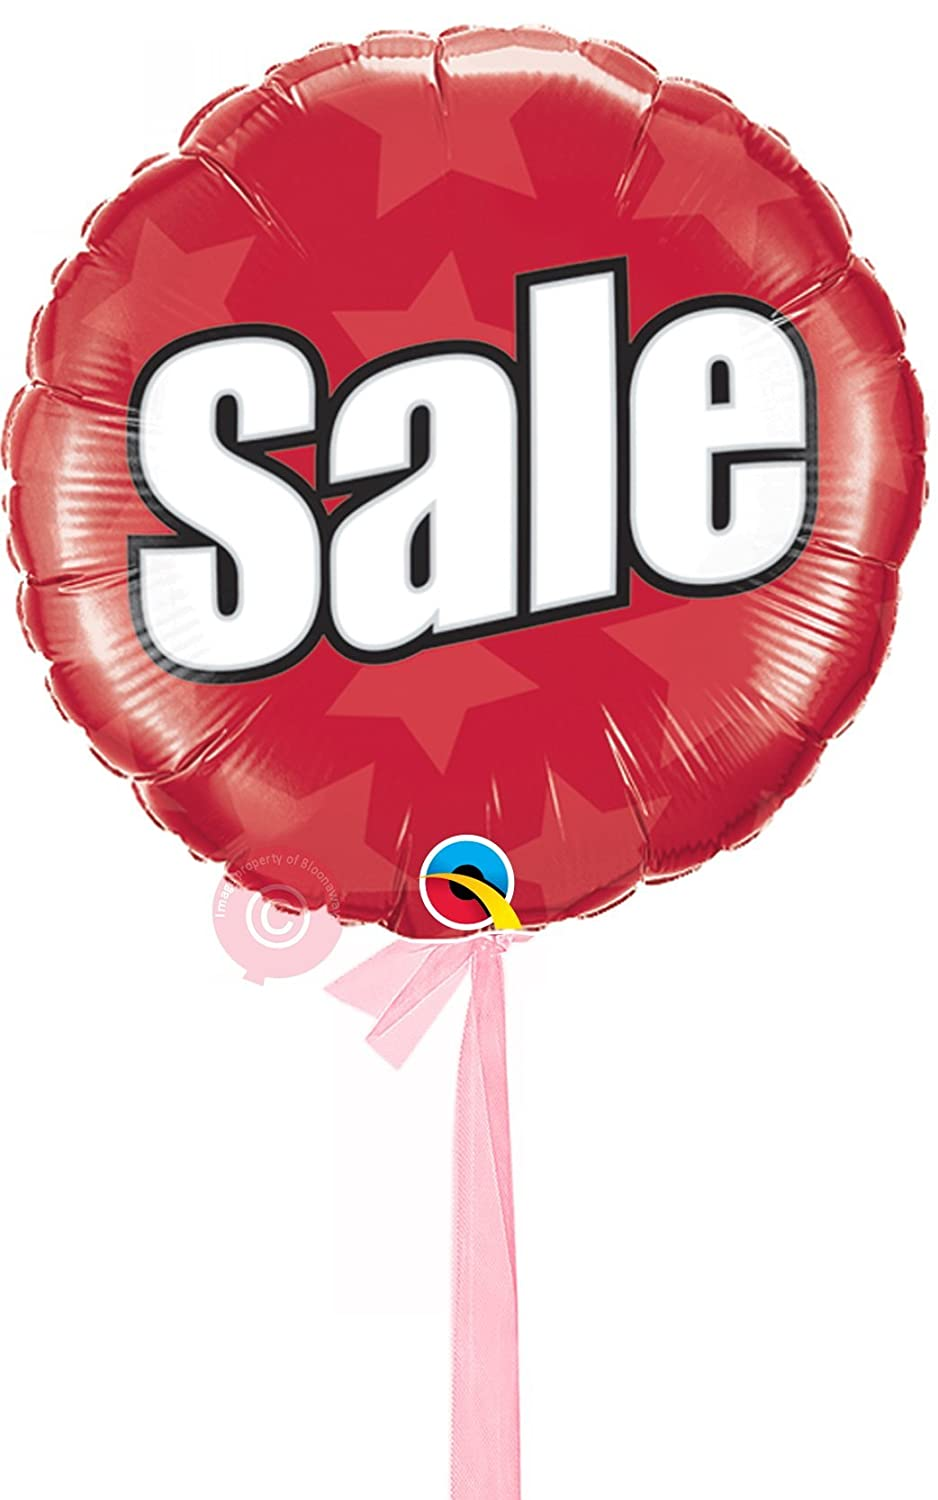 Single Balloon Sale  Starry  Inflated New Job Promotion Helium Balloon Delivered in a Box  Biggest Bouquet  10 Balloons  Bloonaway